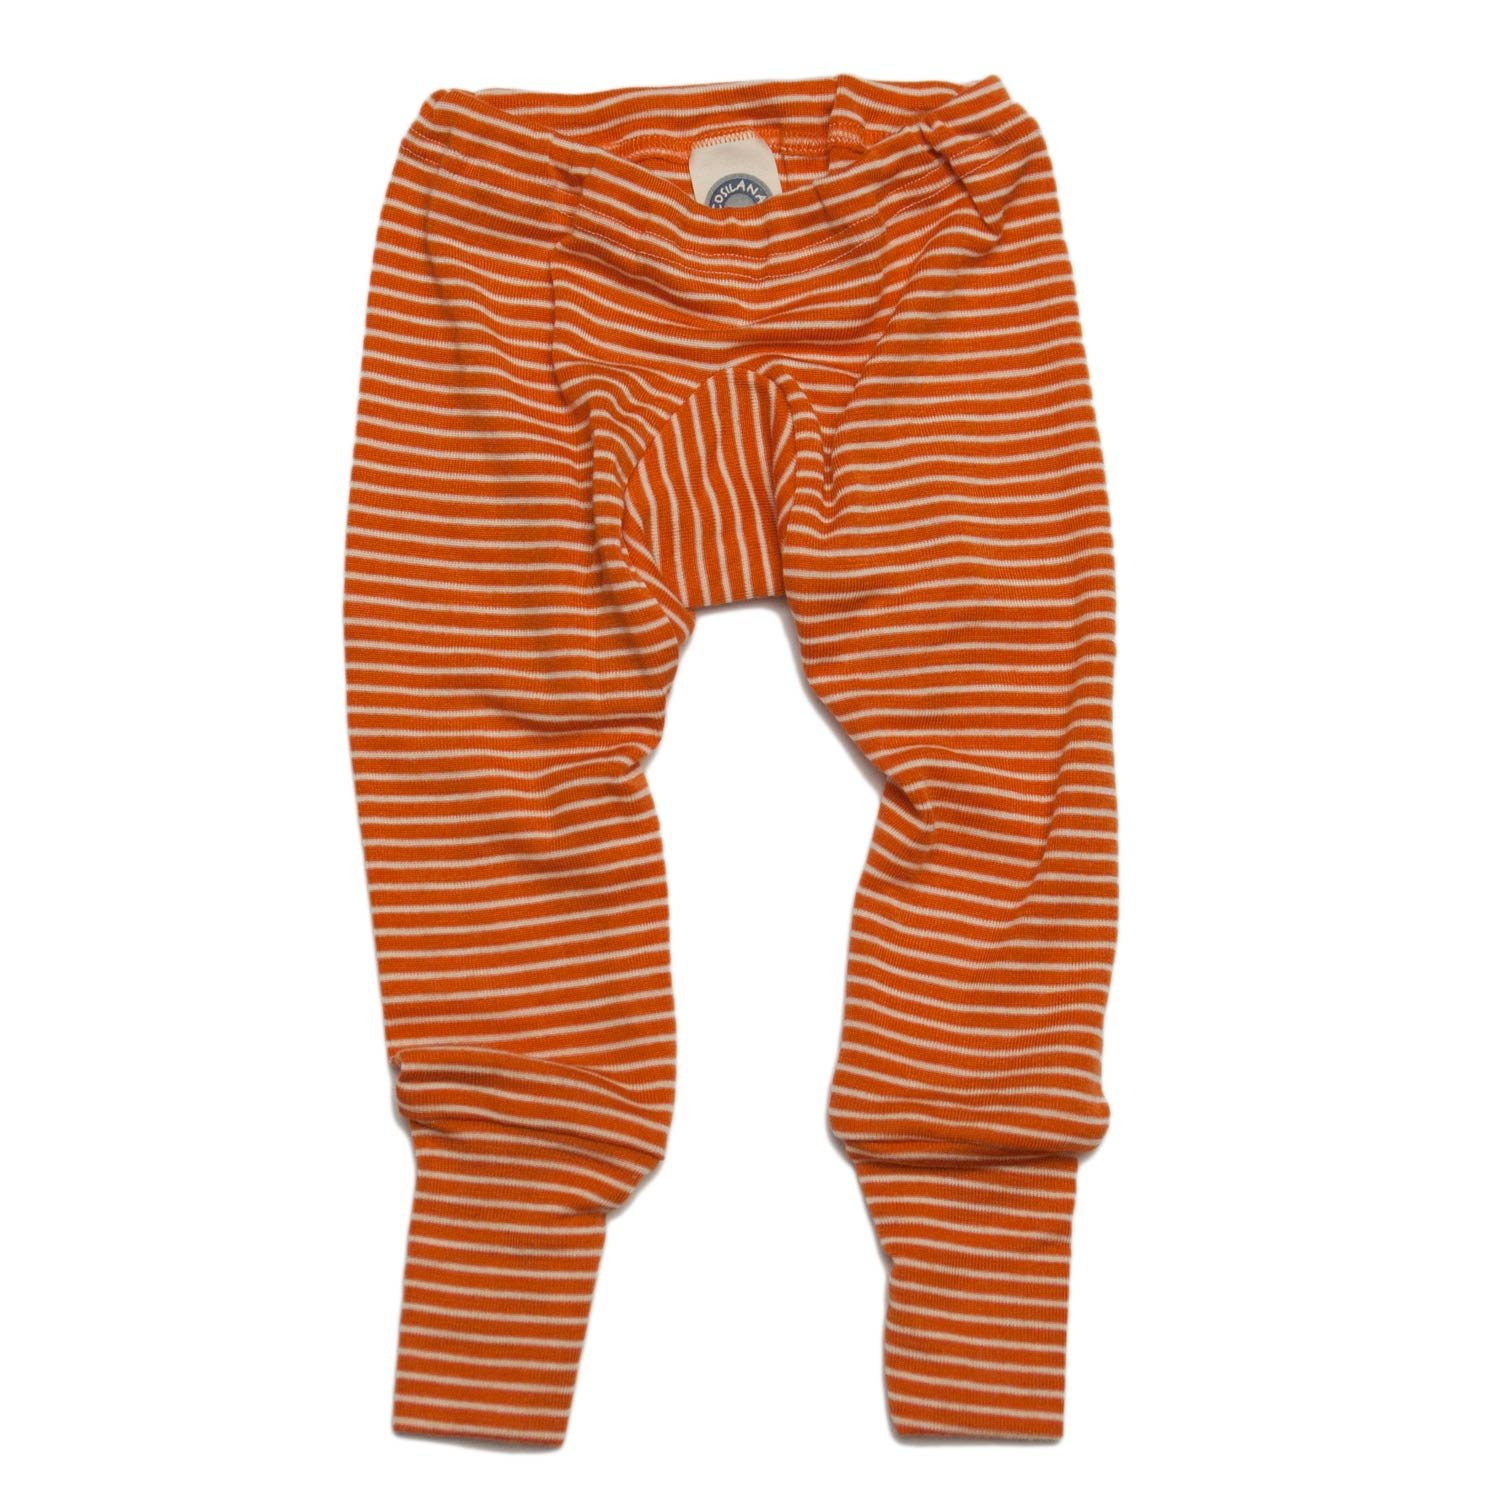 Cosilana - Baby Long Johns Bottoms, 70% Organic Merino Wool, 30% Silk